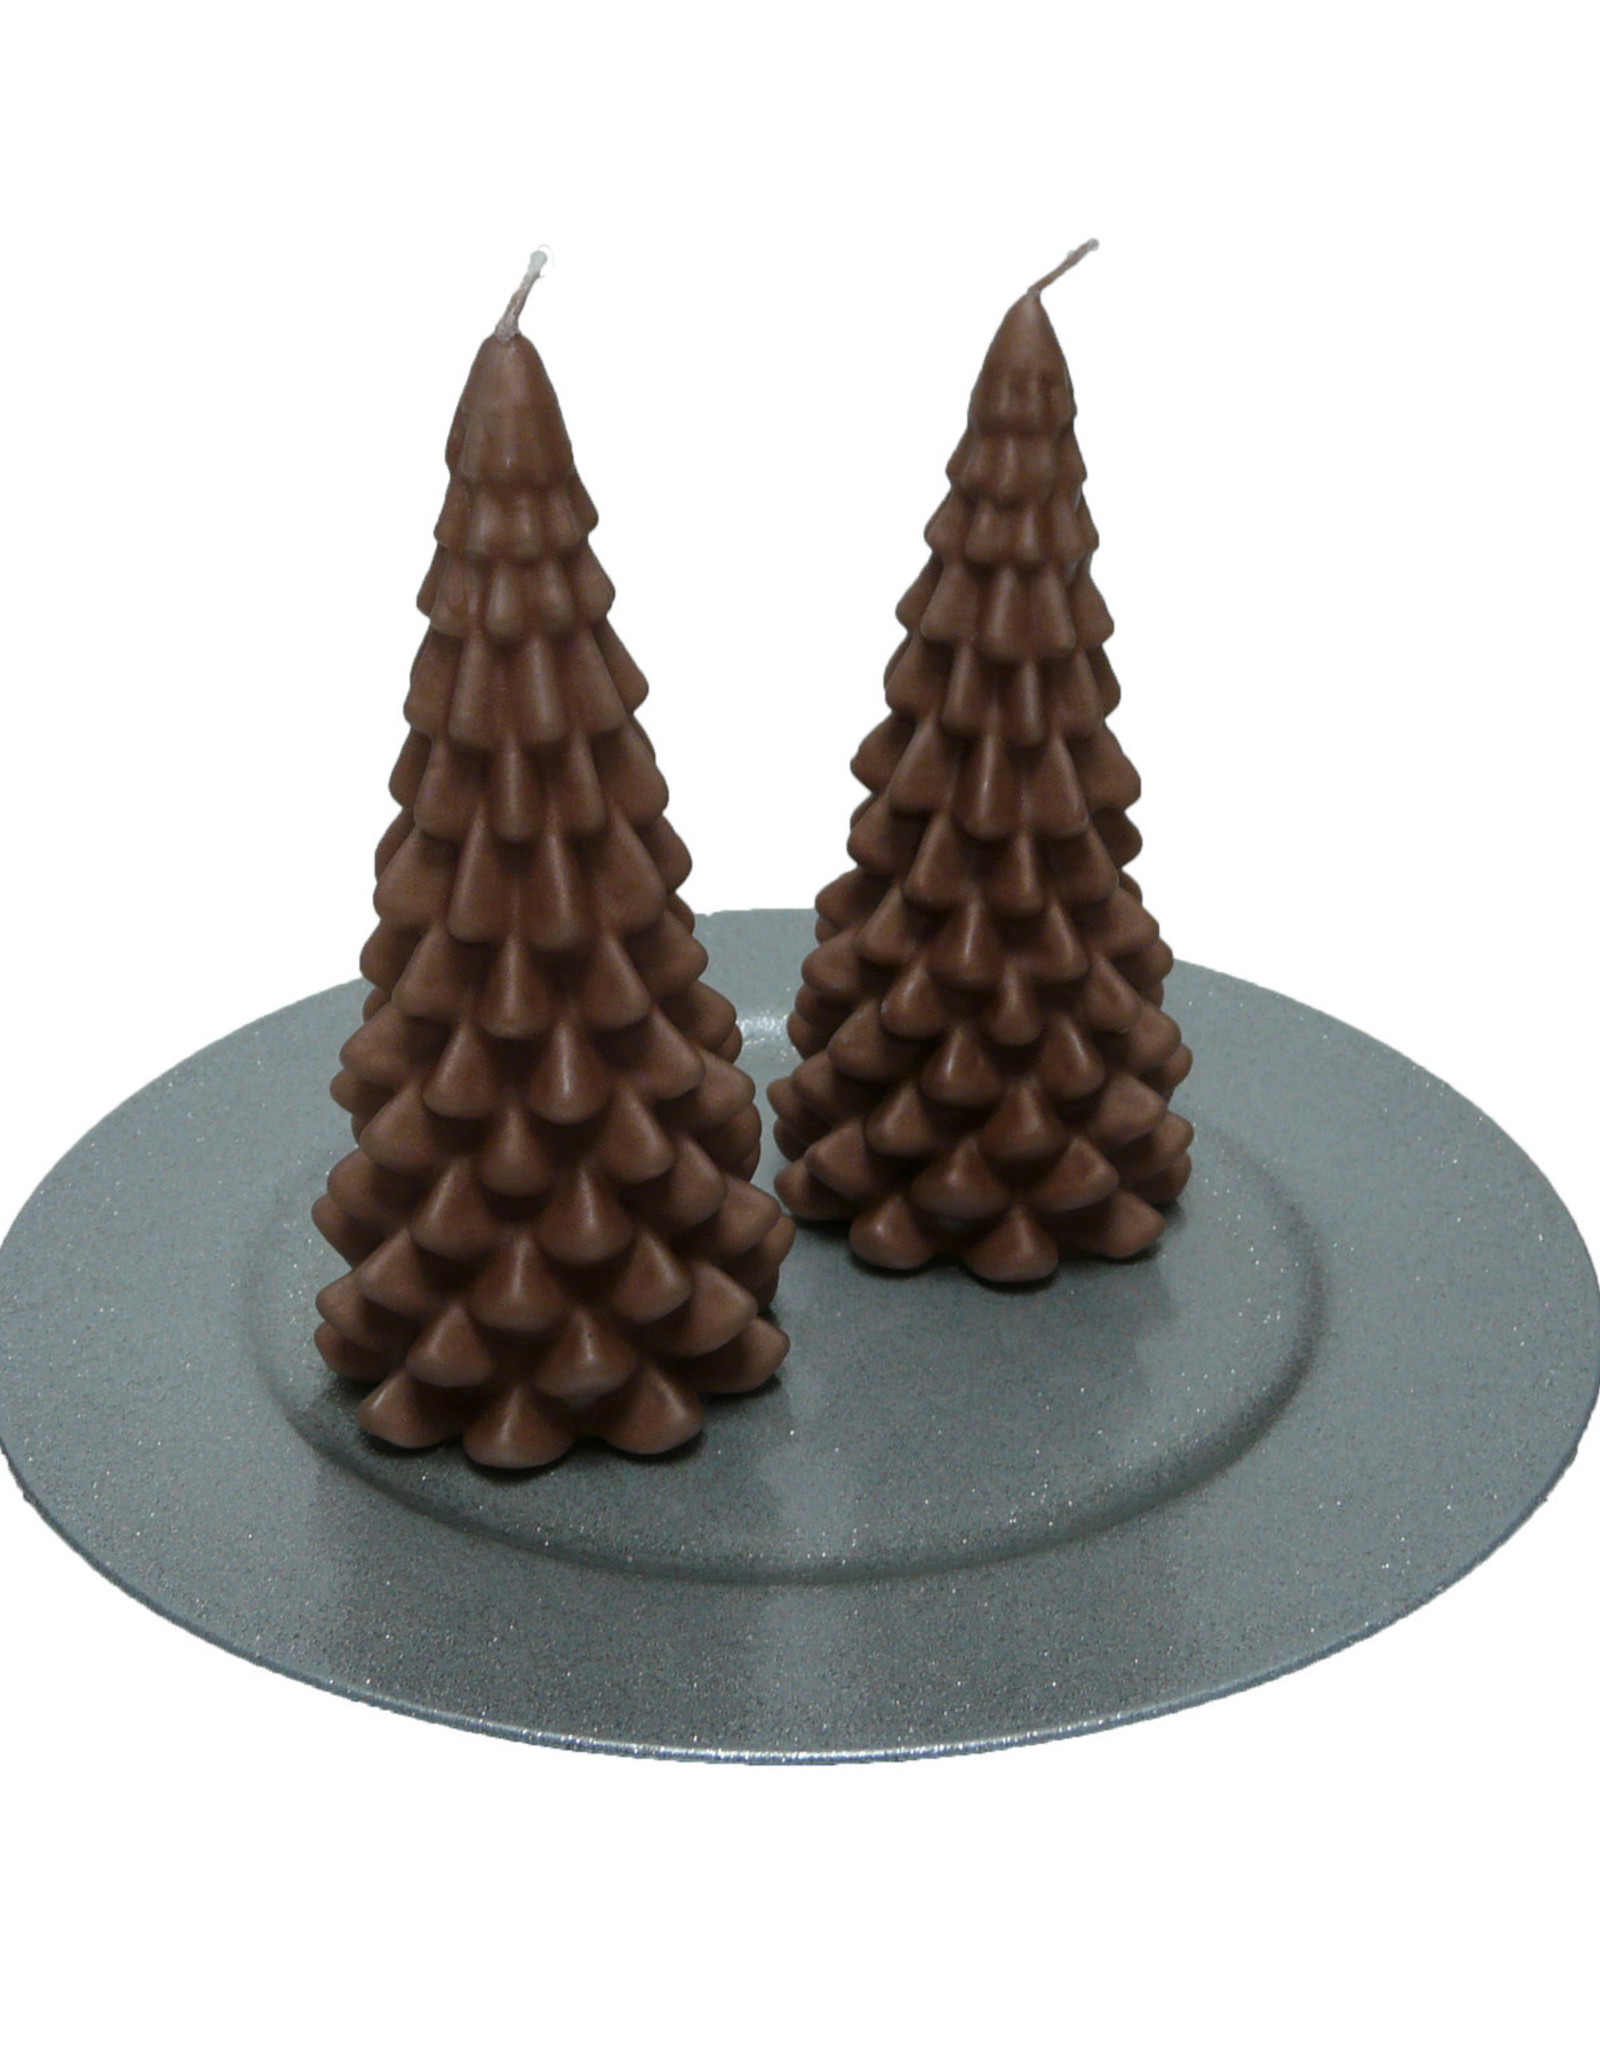 Kerstboom Kaars - Christmas Tree Candle Copper 20x10 cm - Copy